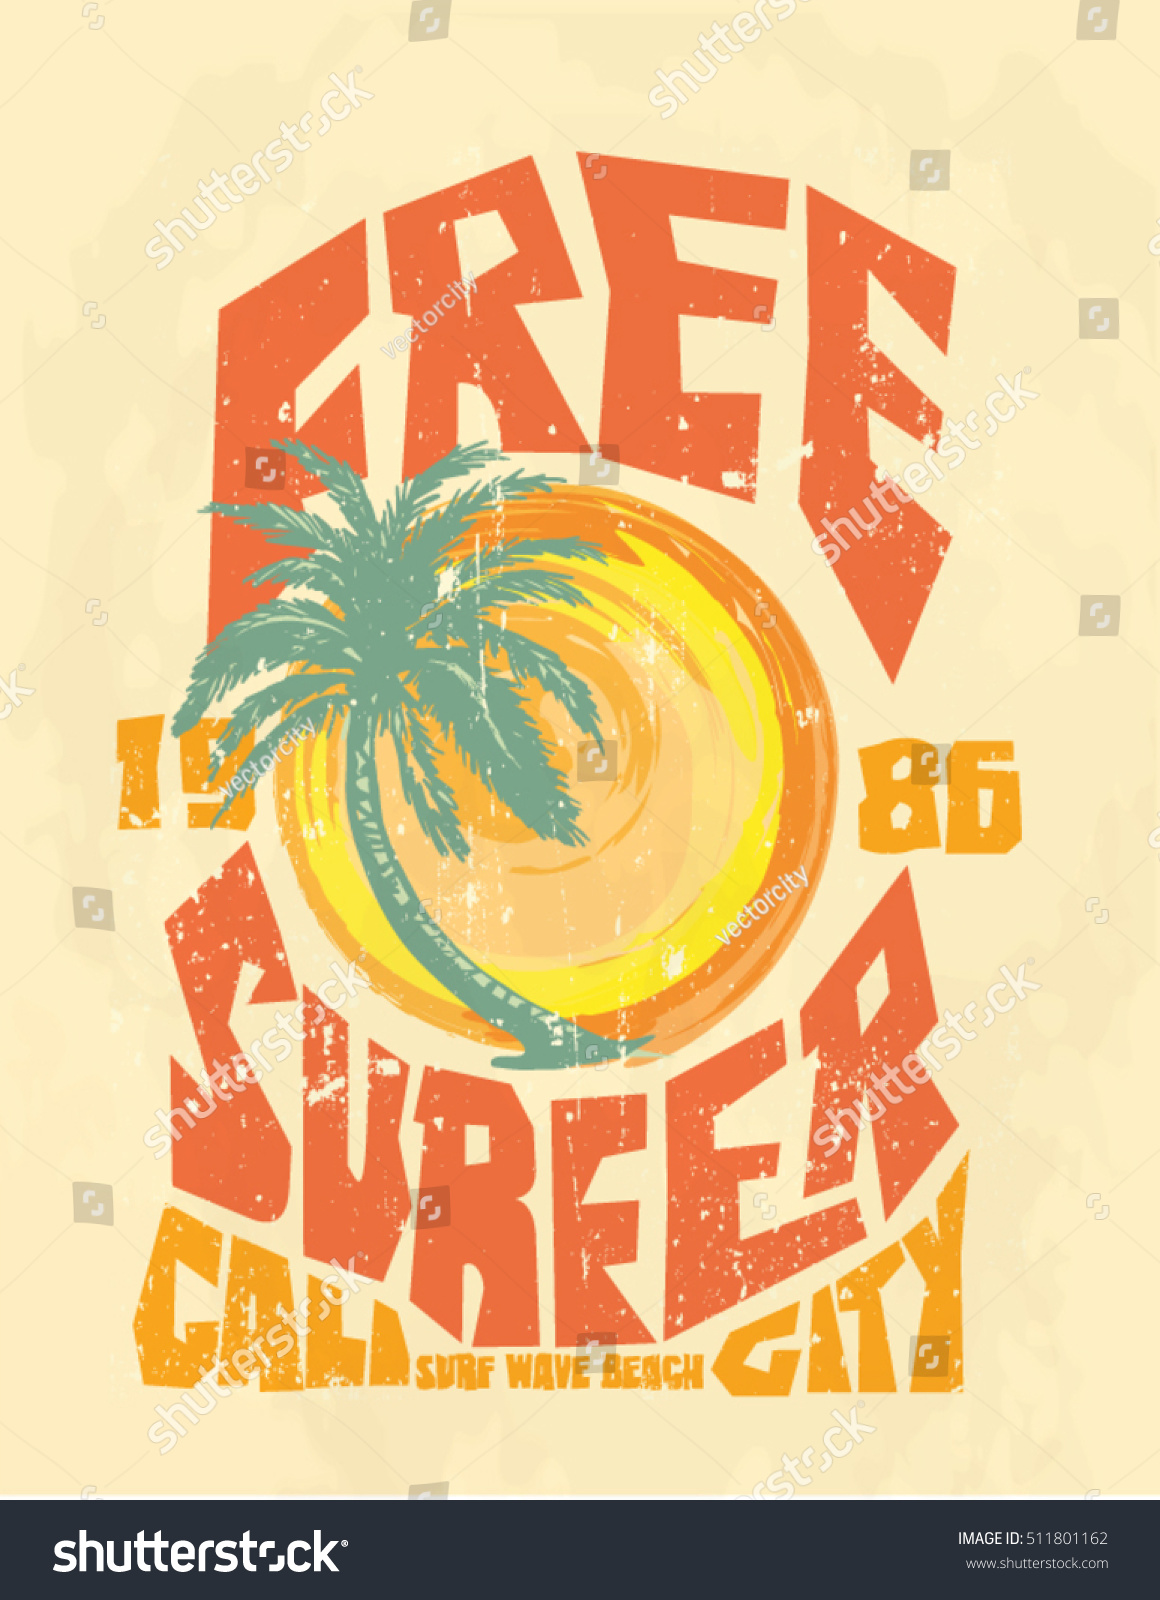 Sunset Surf And Beach Vintage Print Tee Graphic Design